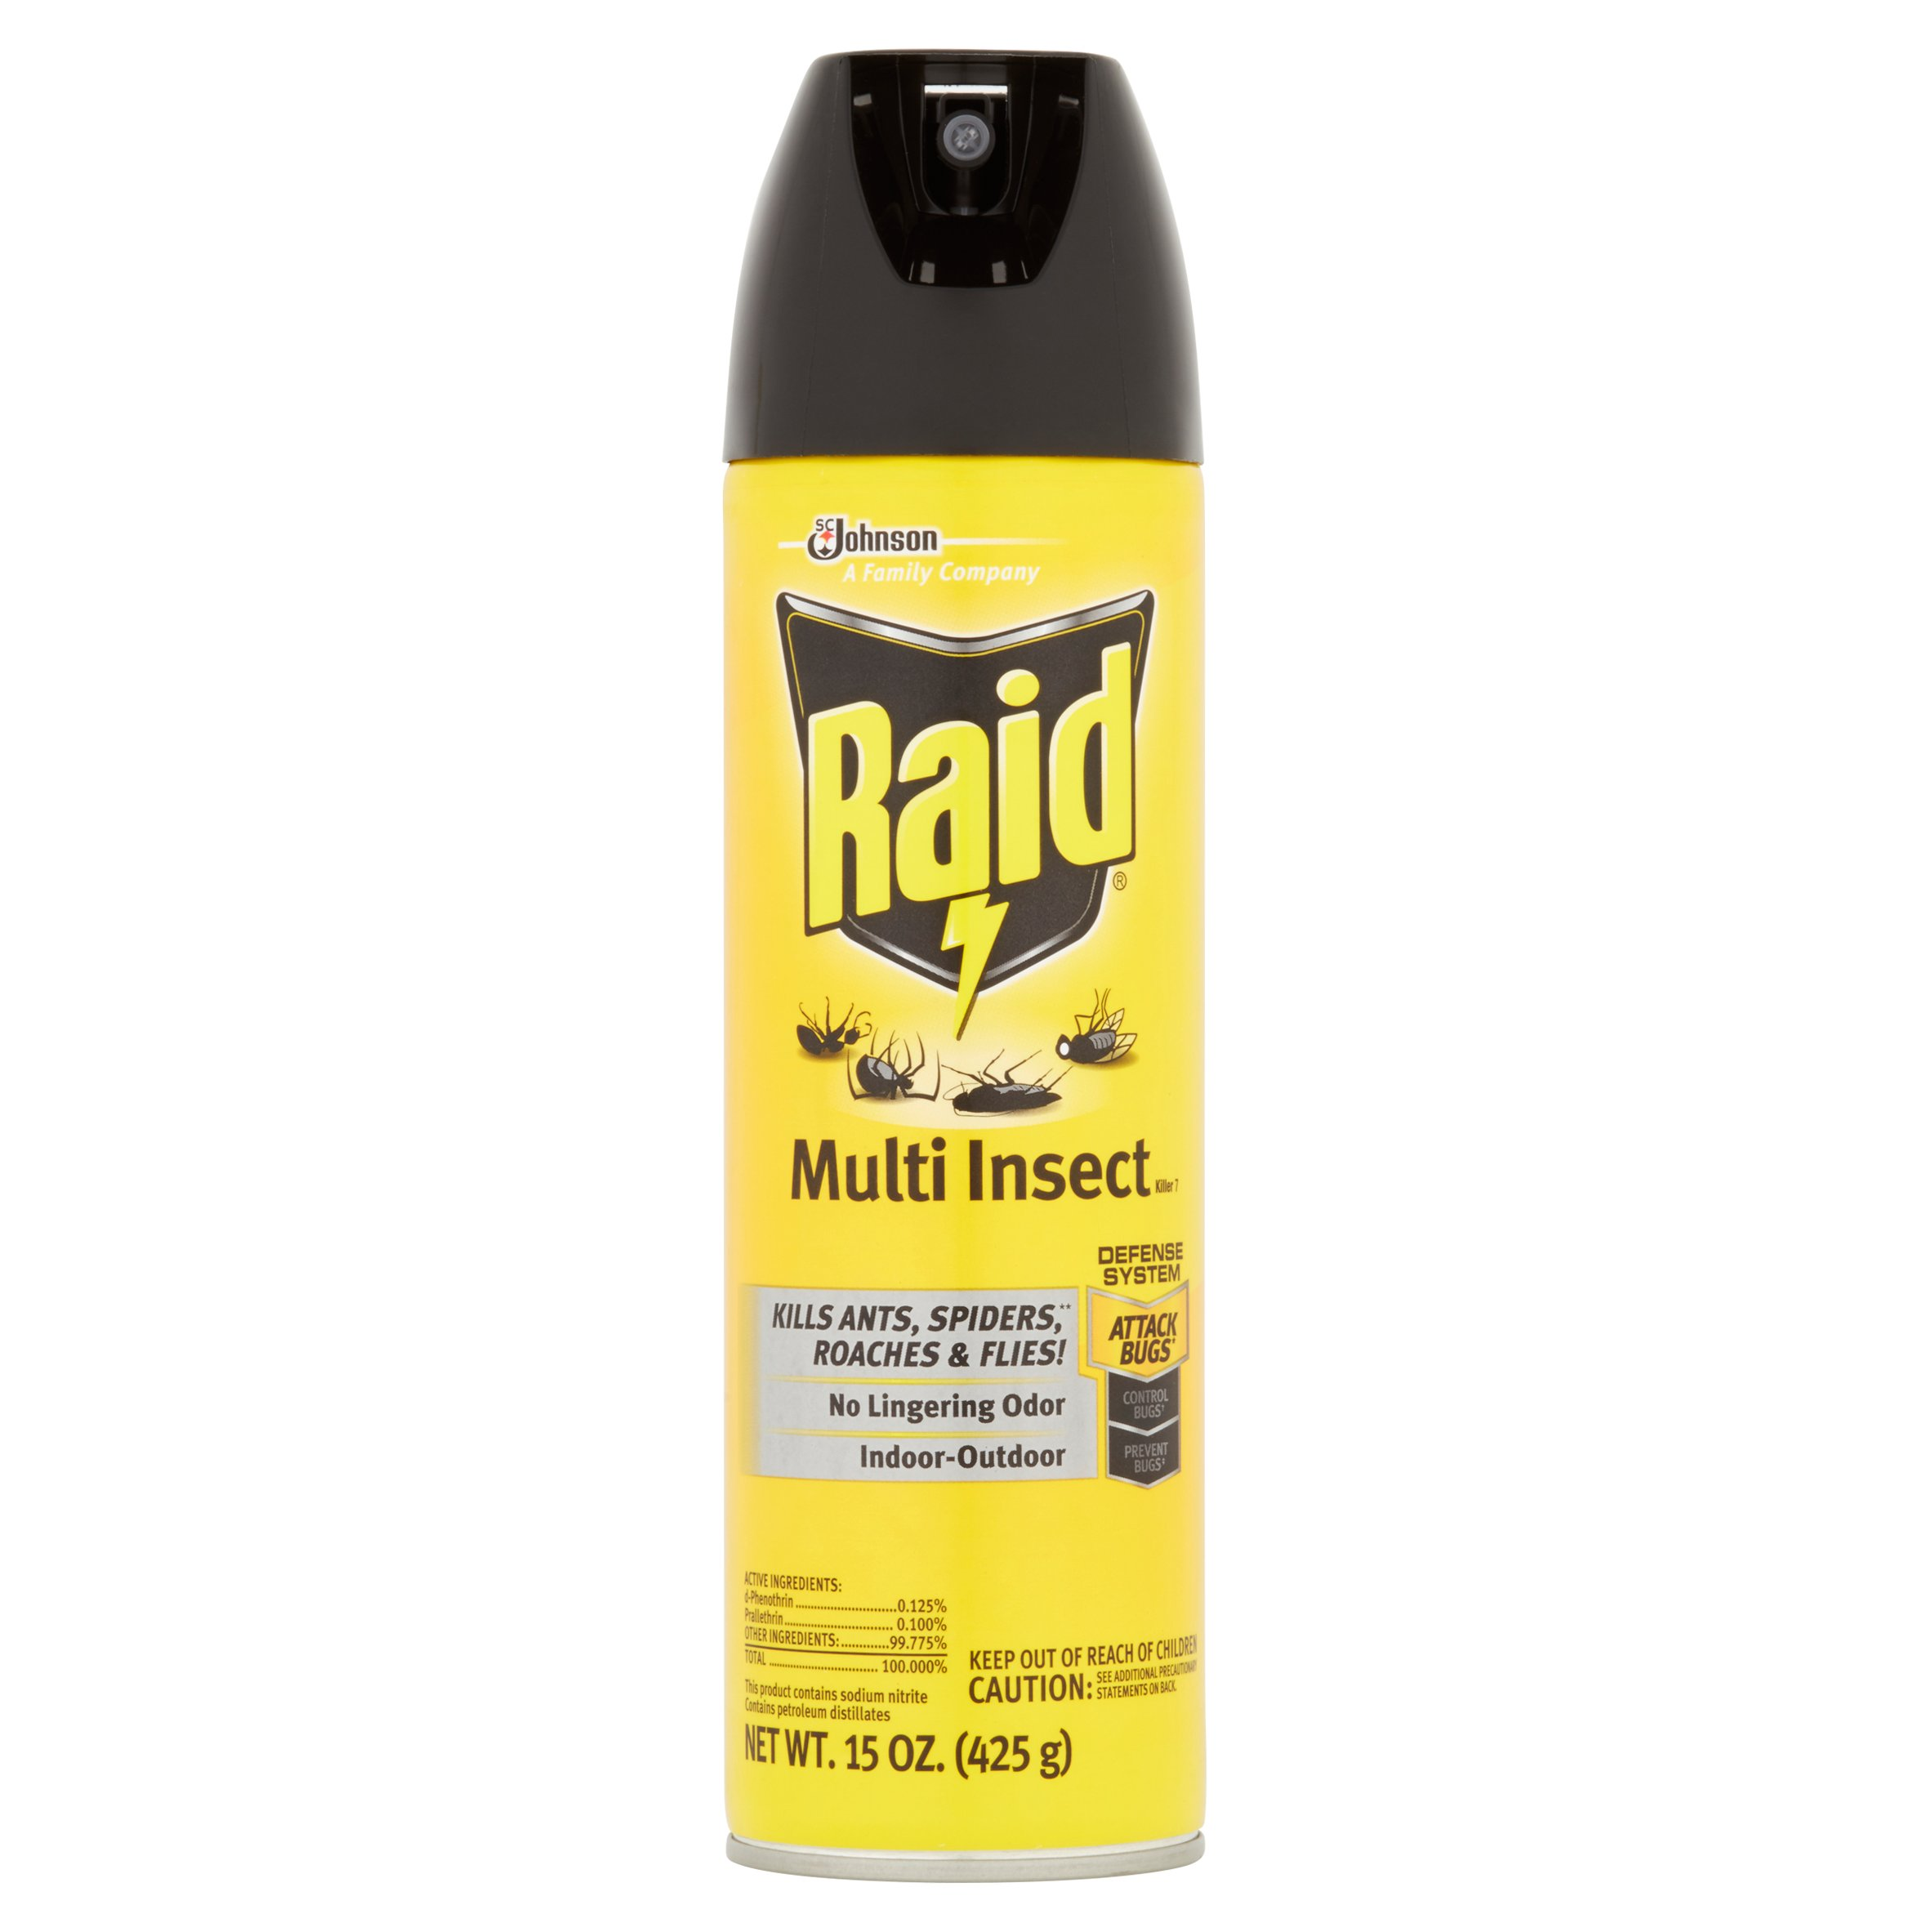 Raid Multi Insect Killer 7 15oz